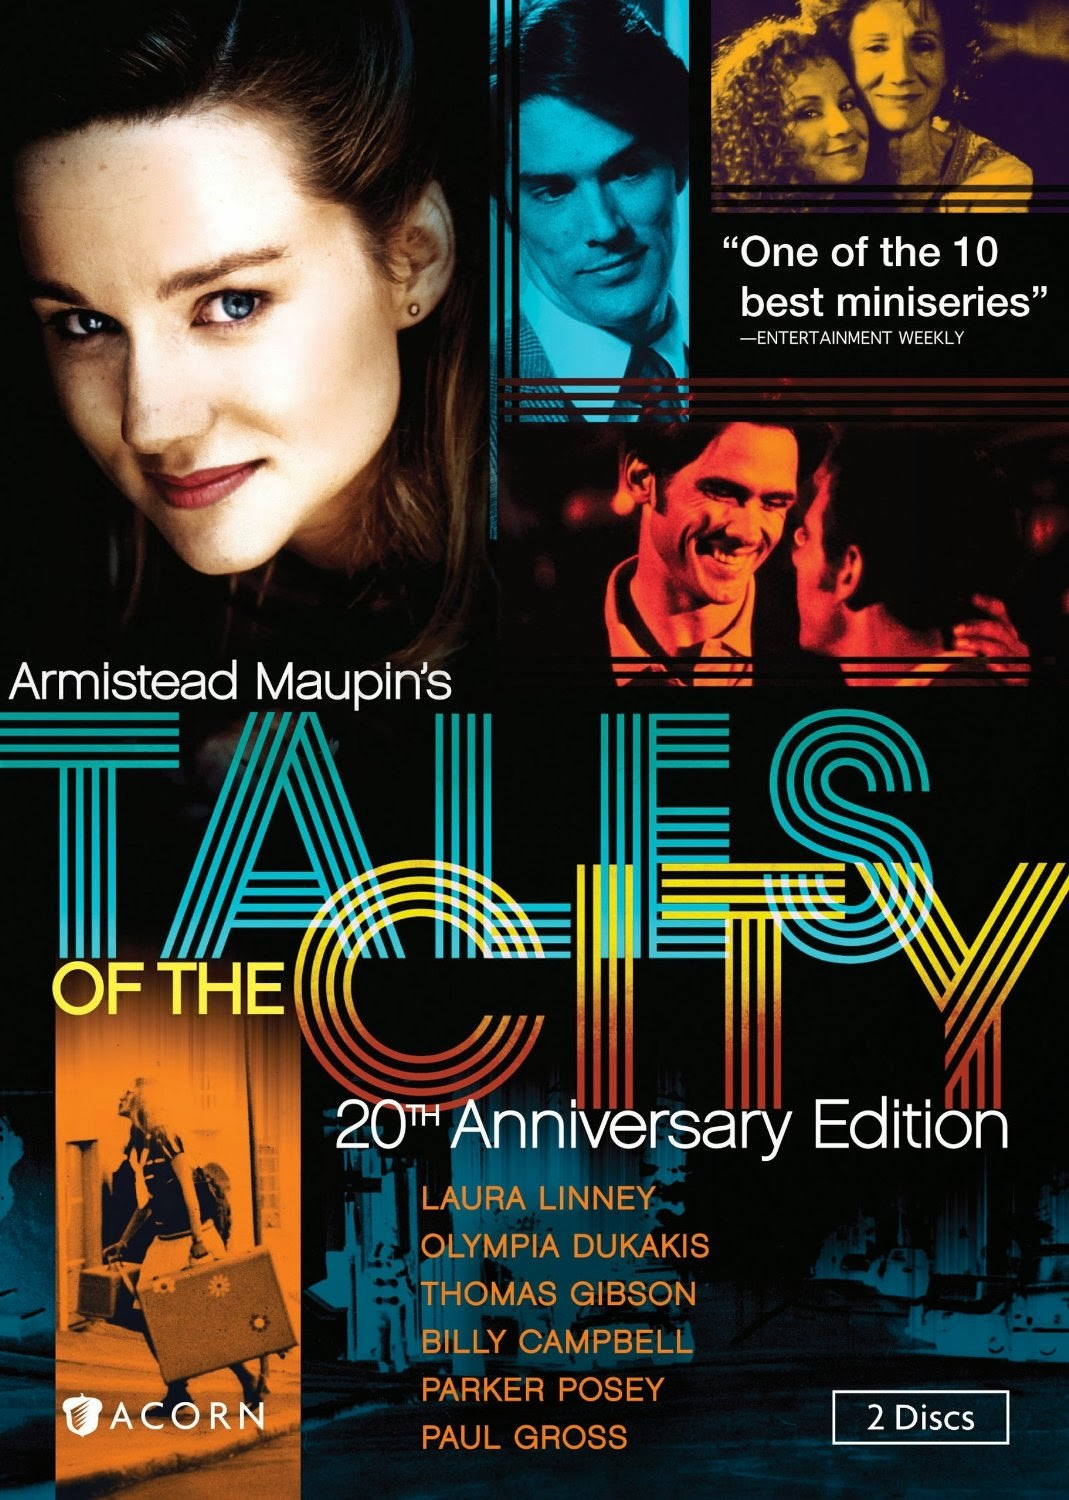 http://discover.halifaxpubliclibraries.ca/?q=title:%22tales%20of%20the%20city%22dvd